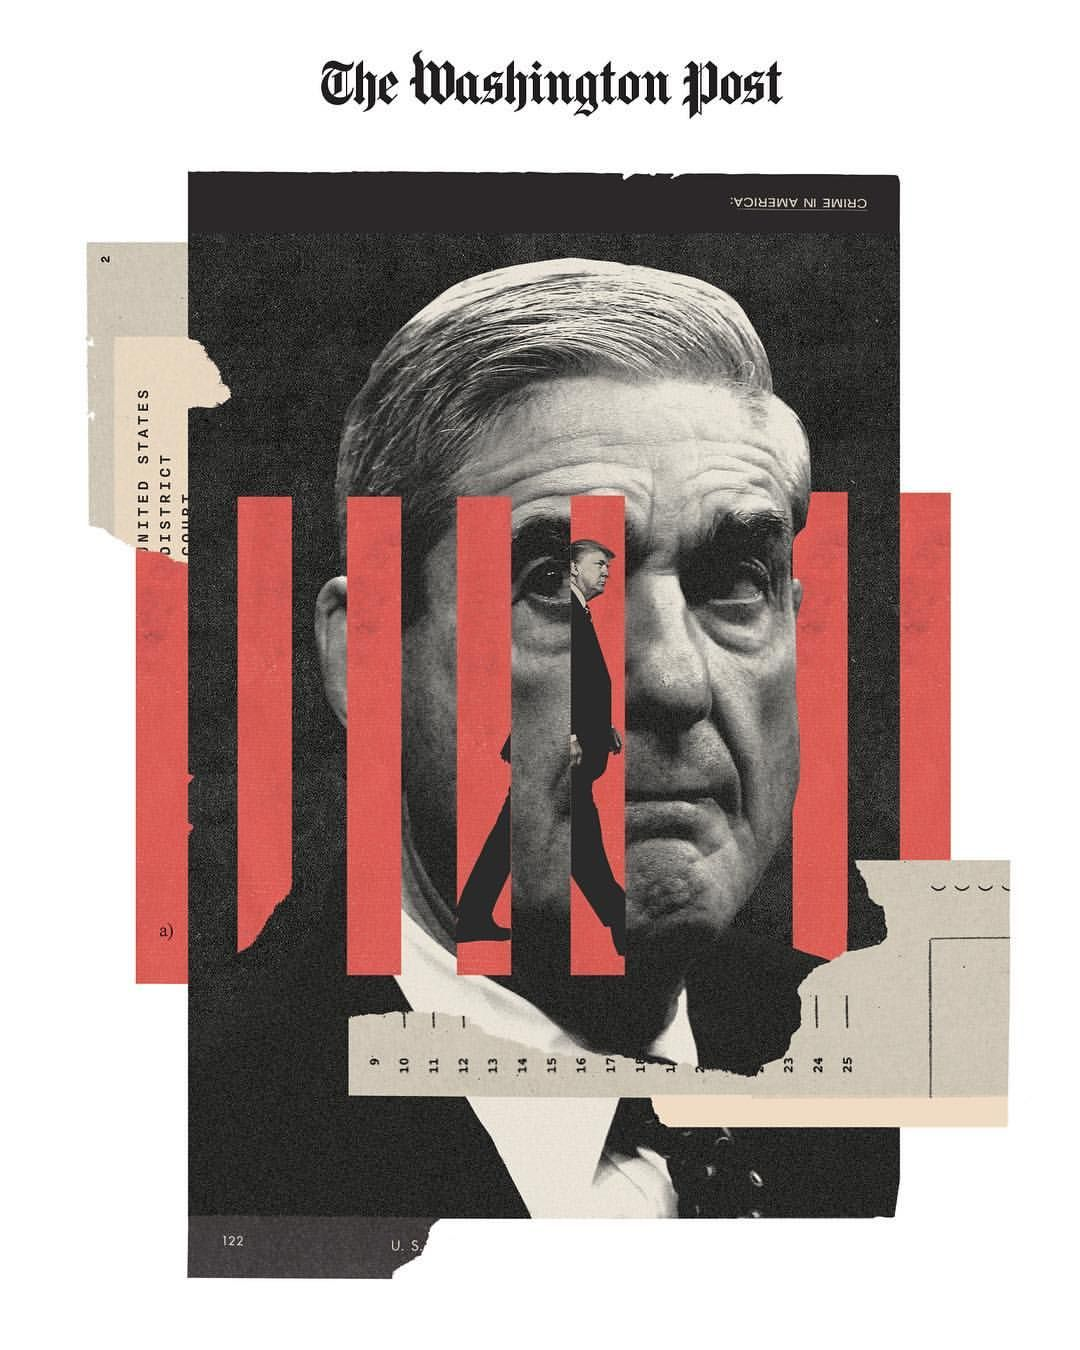 For Today S Washington Post Outlook Section Mueller Has Trump Boxed In On Obstruction Of Justice Thanks Collage Design Graphic Poster Graphic Design Posters